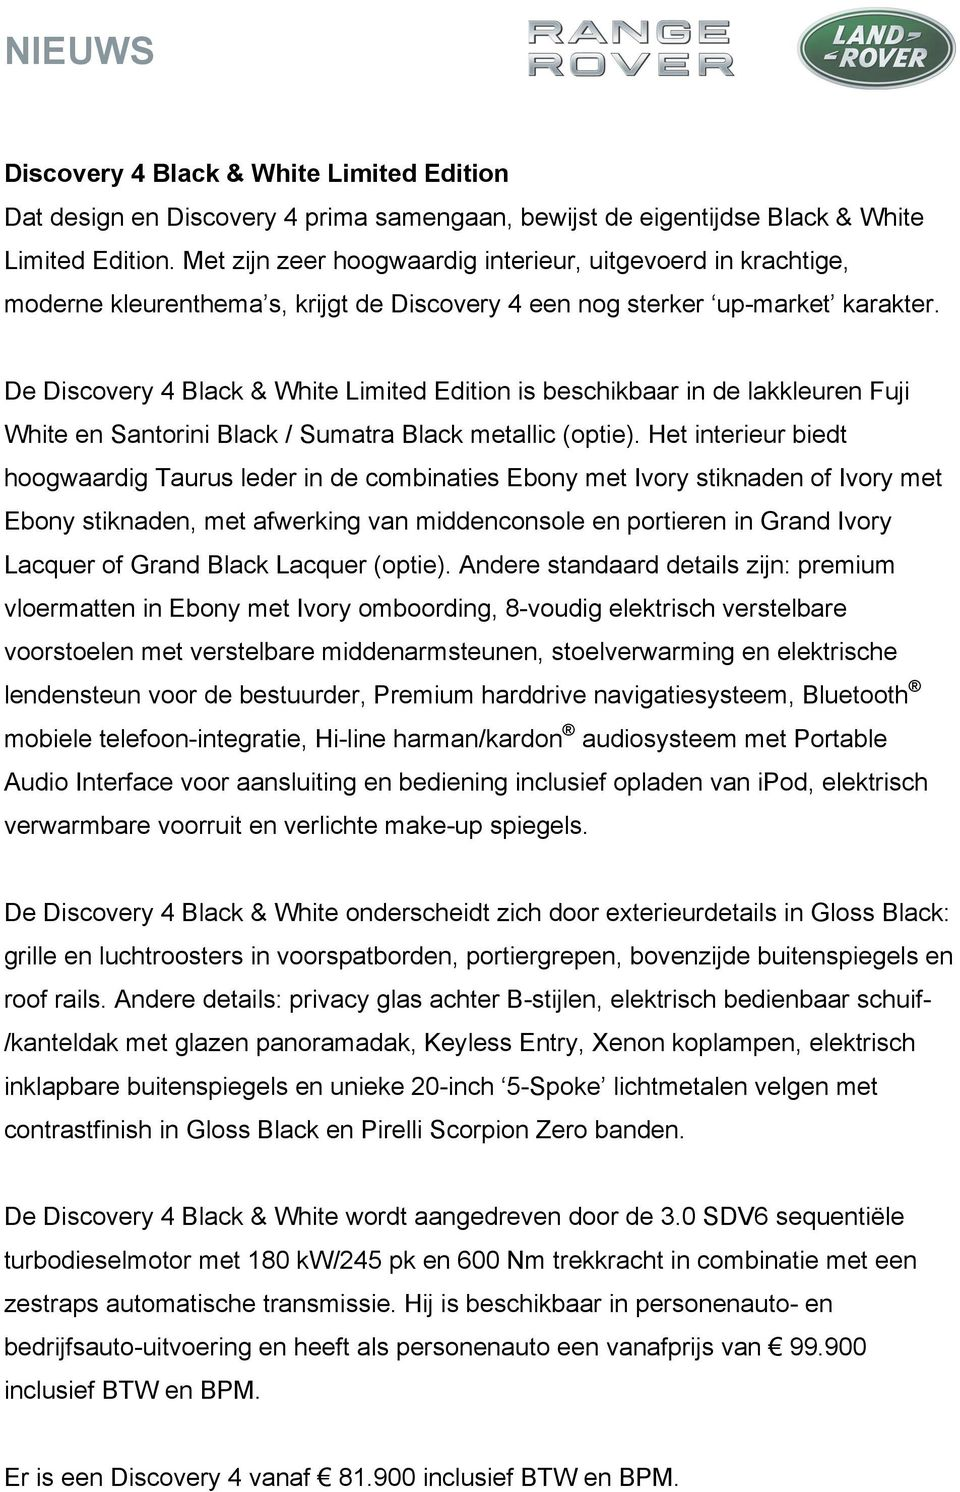 De Discovery 4 Black & White Limited Edition is beschikbaar in de lakkleuren Fuji White en Santorini Black / Sumatra Black metallic (optie).